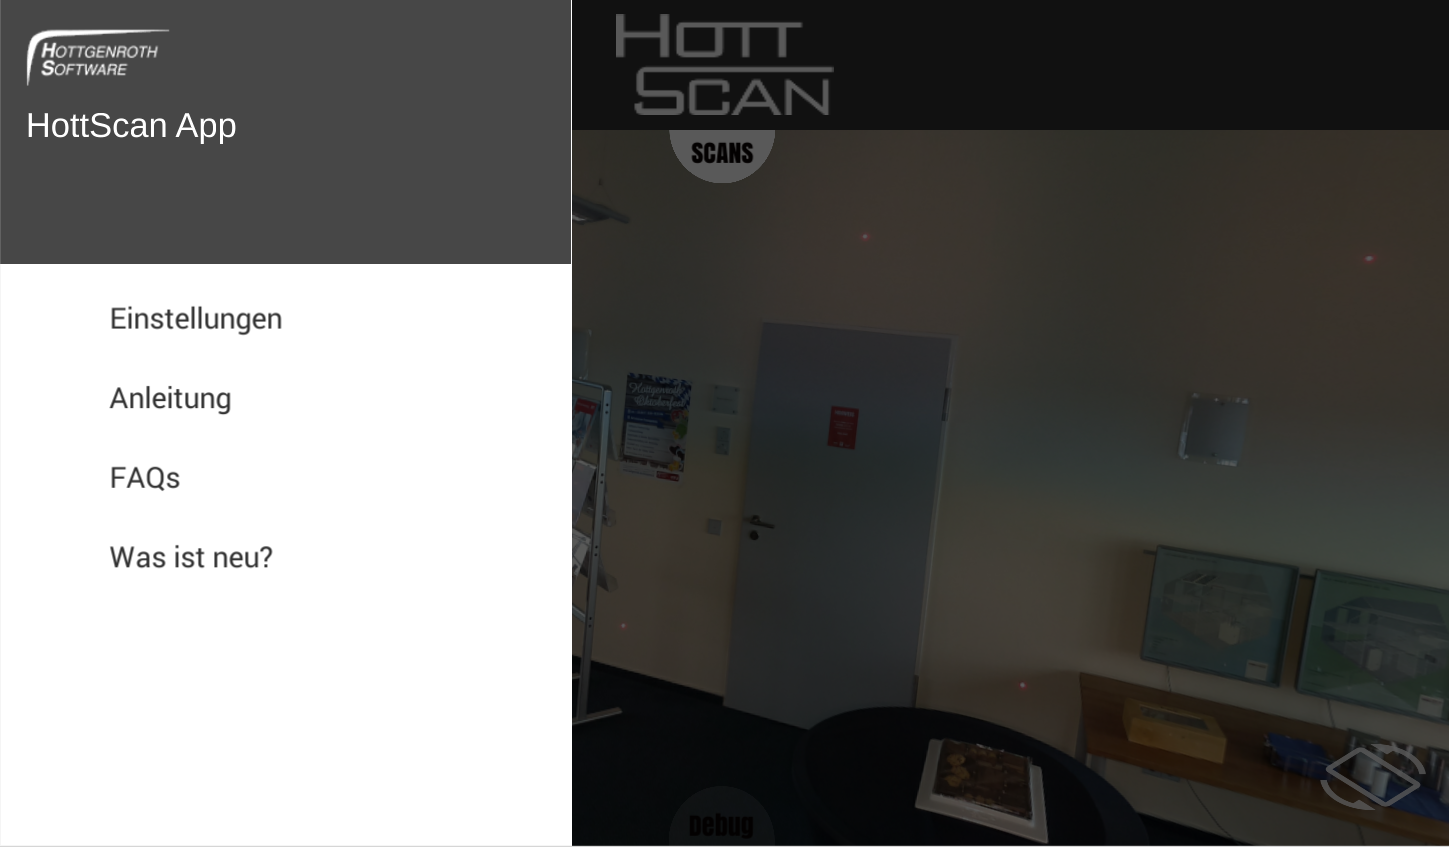 HottScan App- screenshot